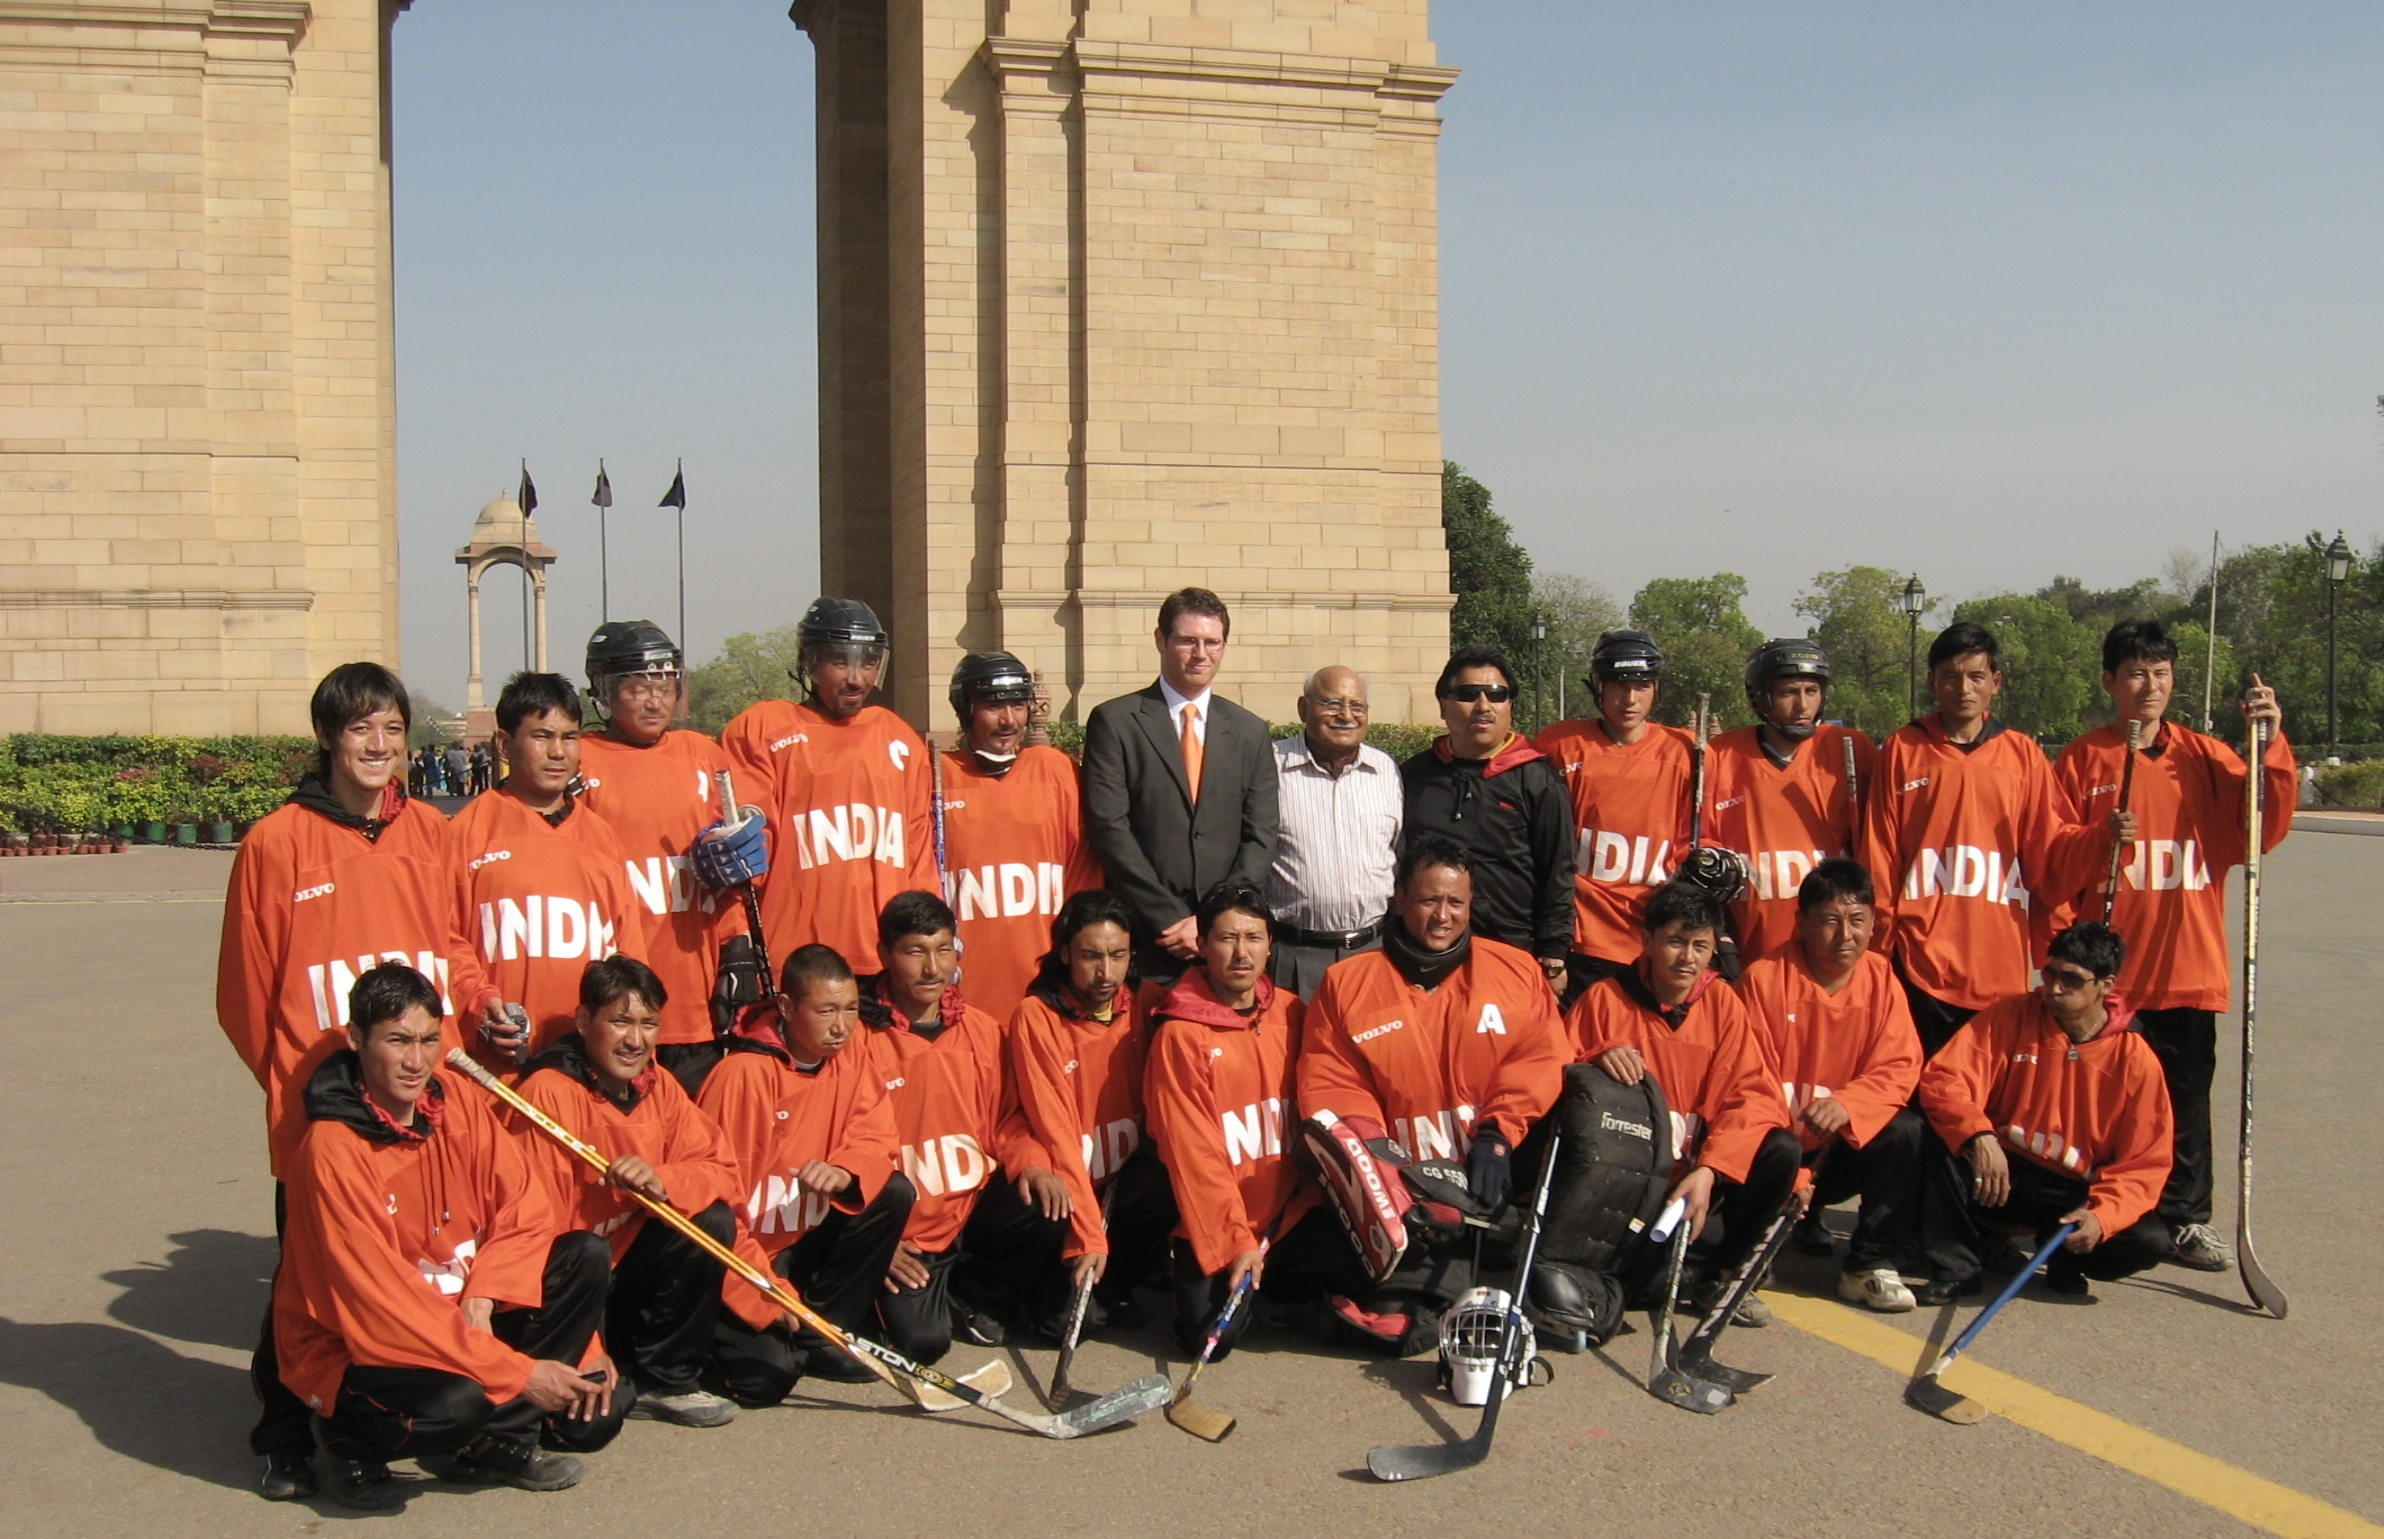 Indian National Ice Hockey Team: How it's Relevant — The